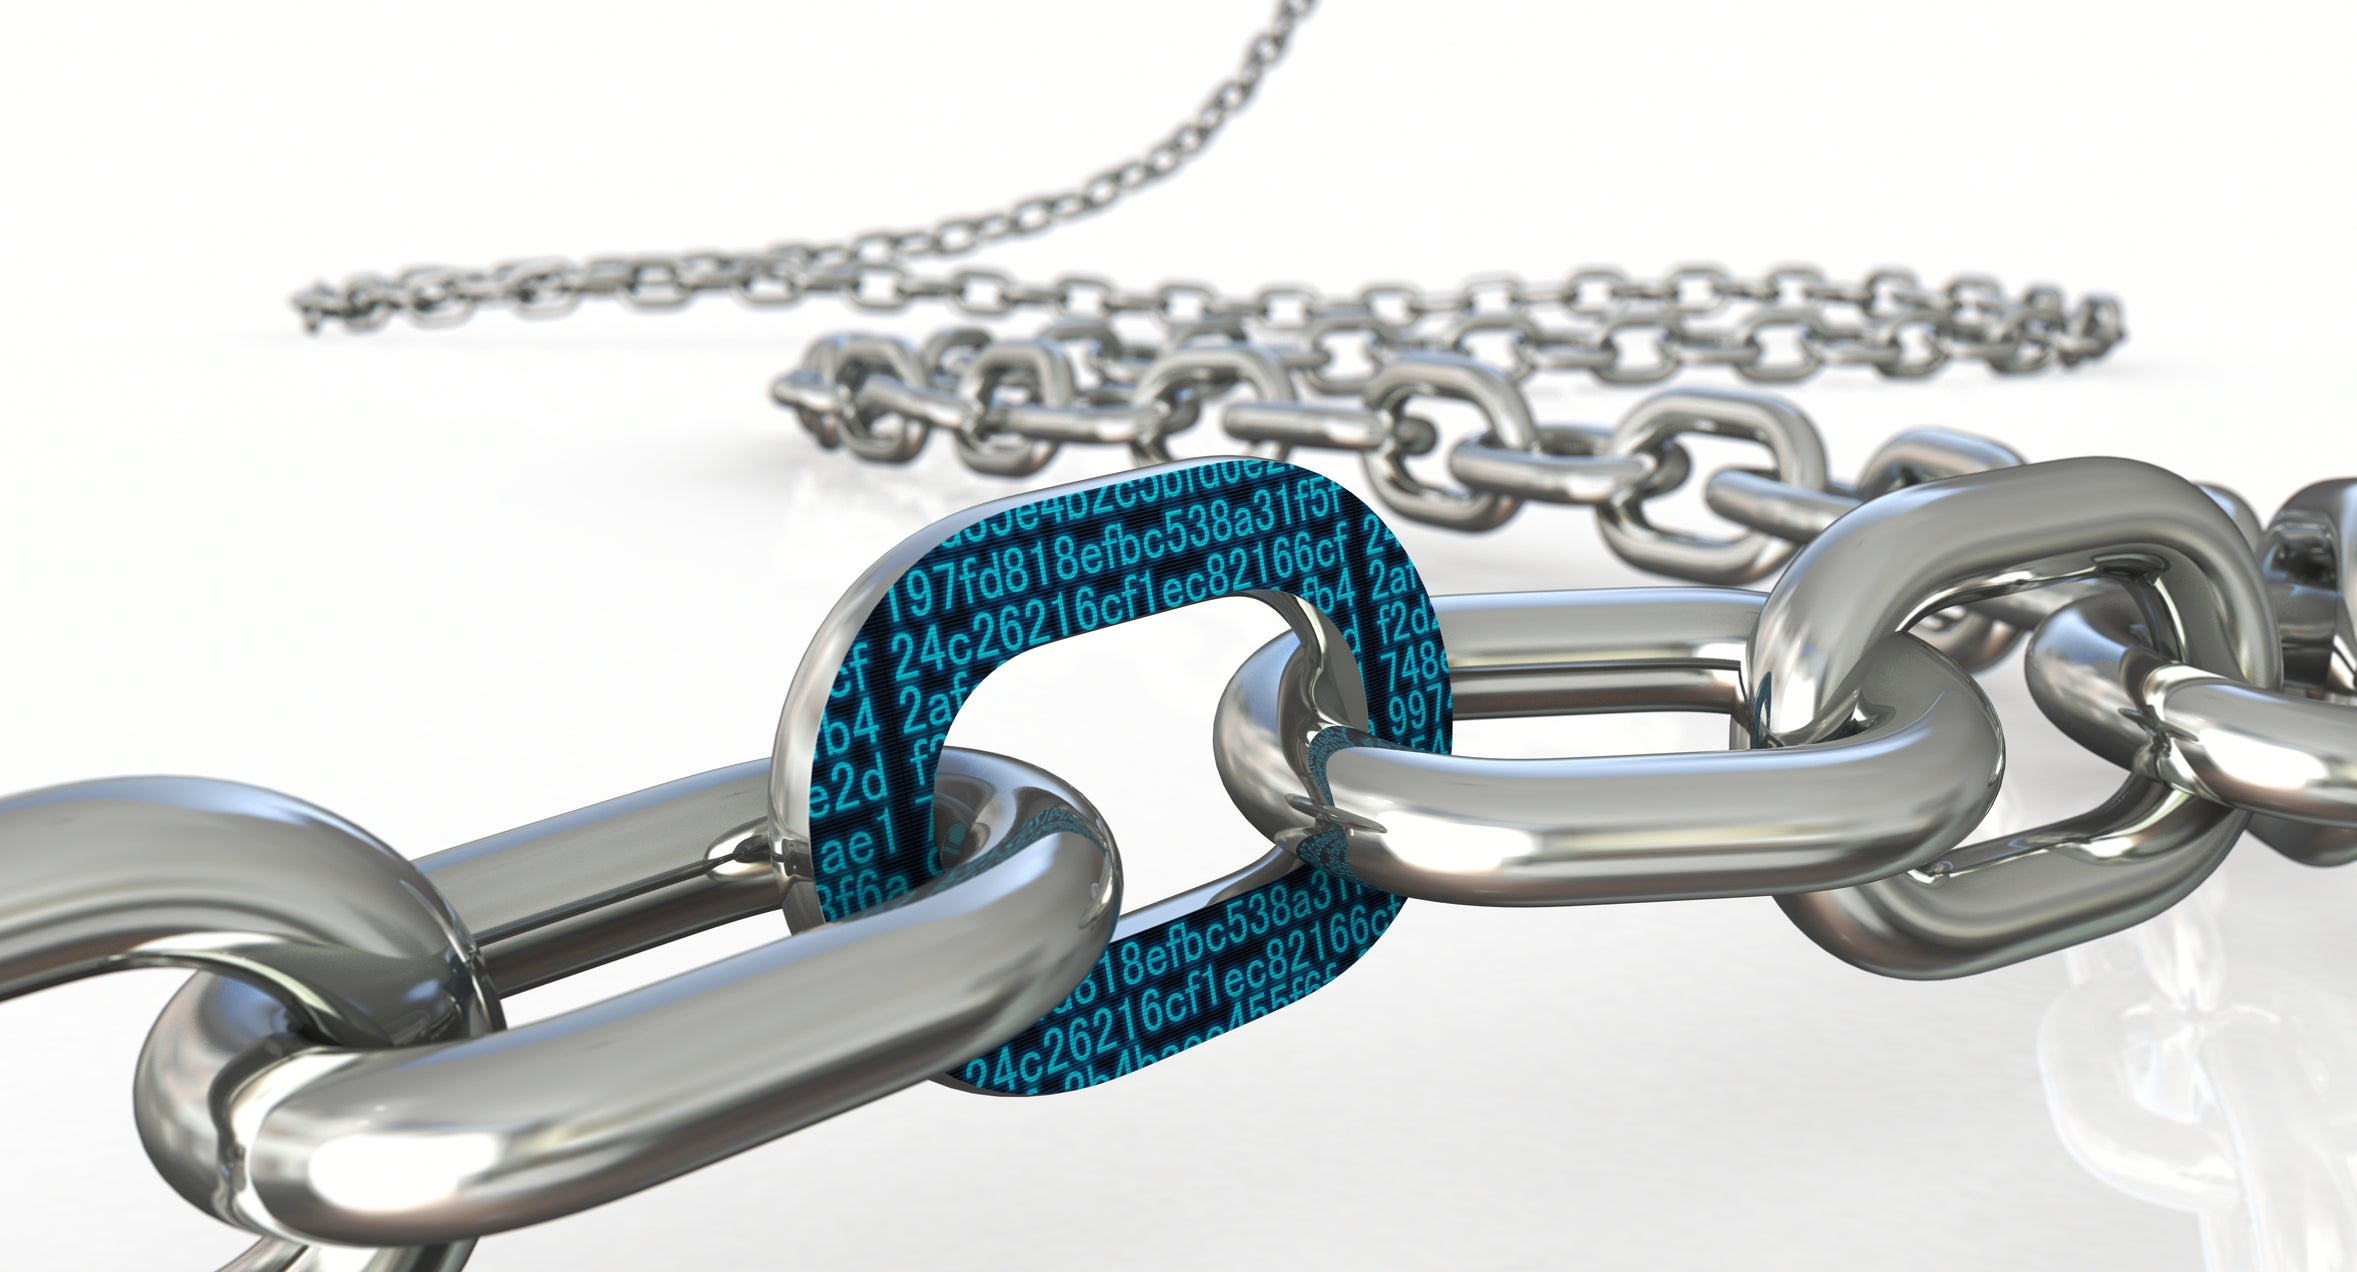 A metal chain twists across a shiny white table. The view is focused in a single link covered in hexadecimal encryption keys.